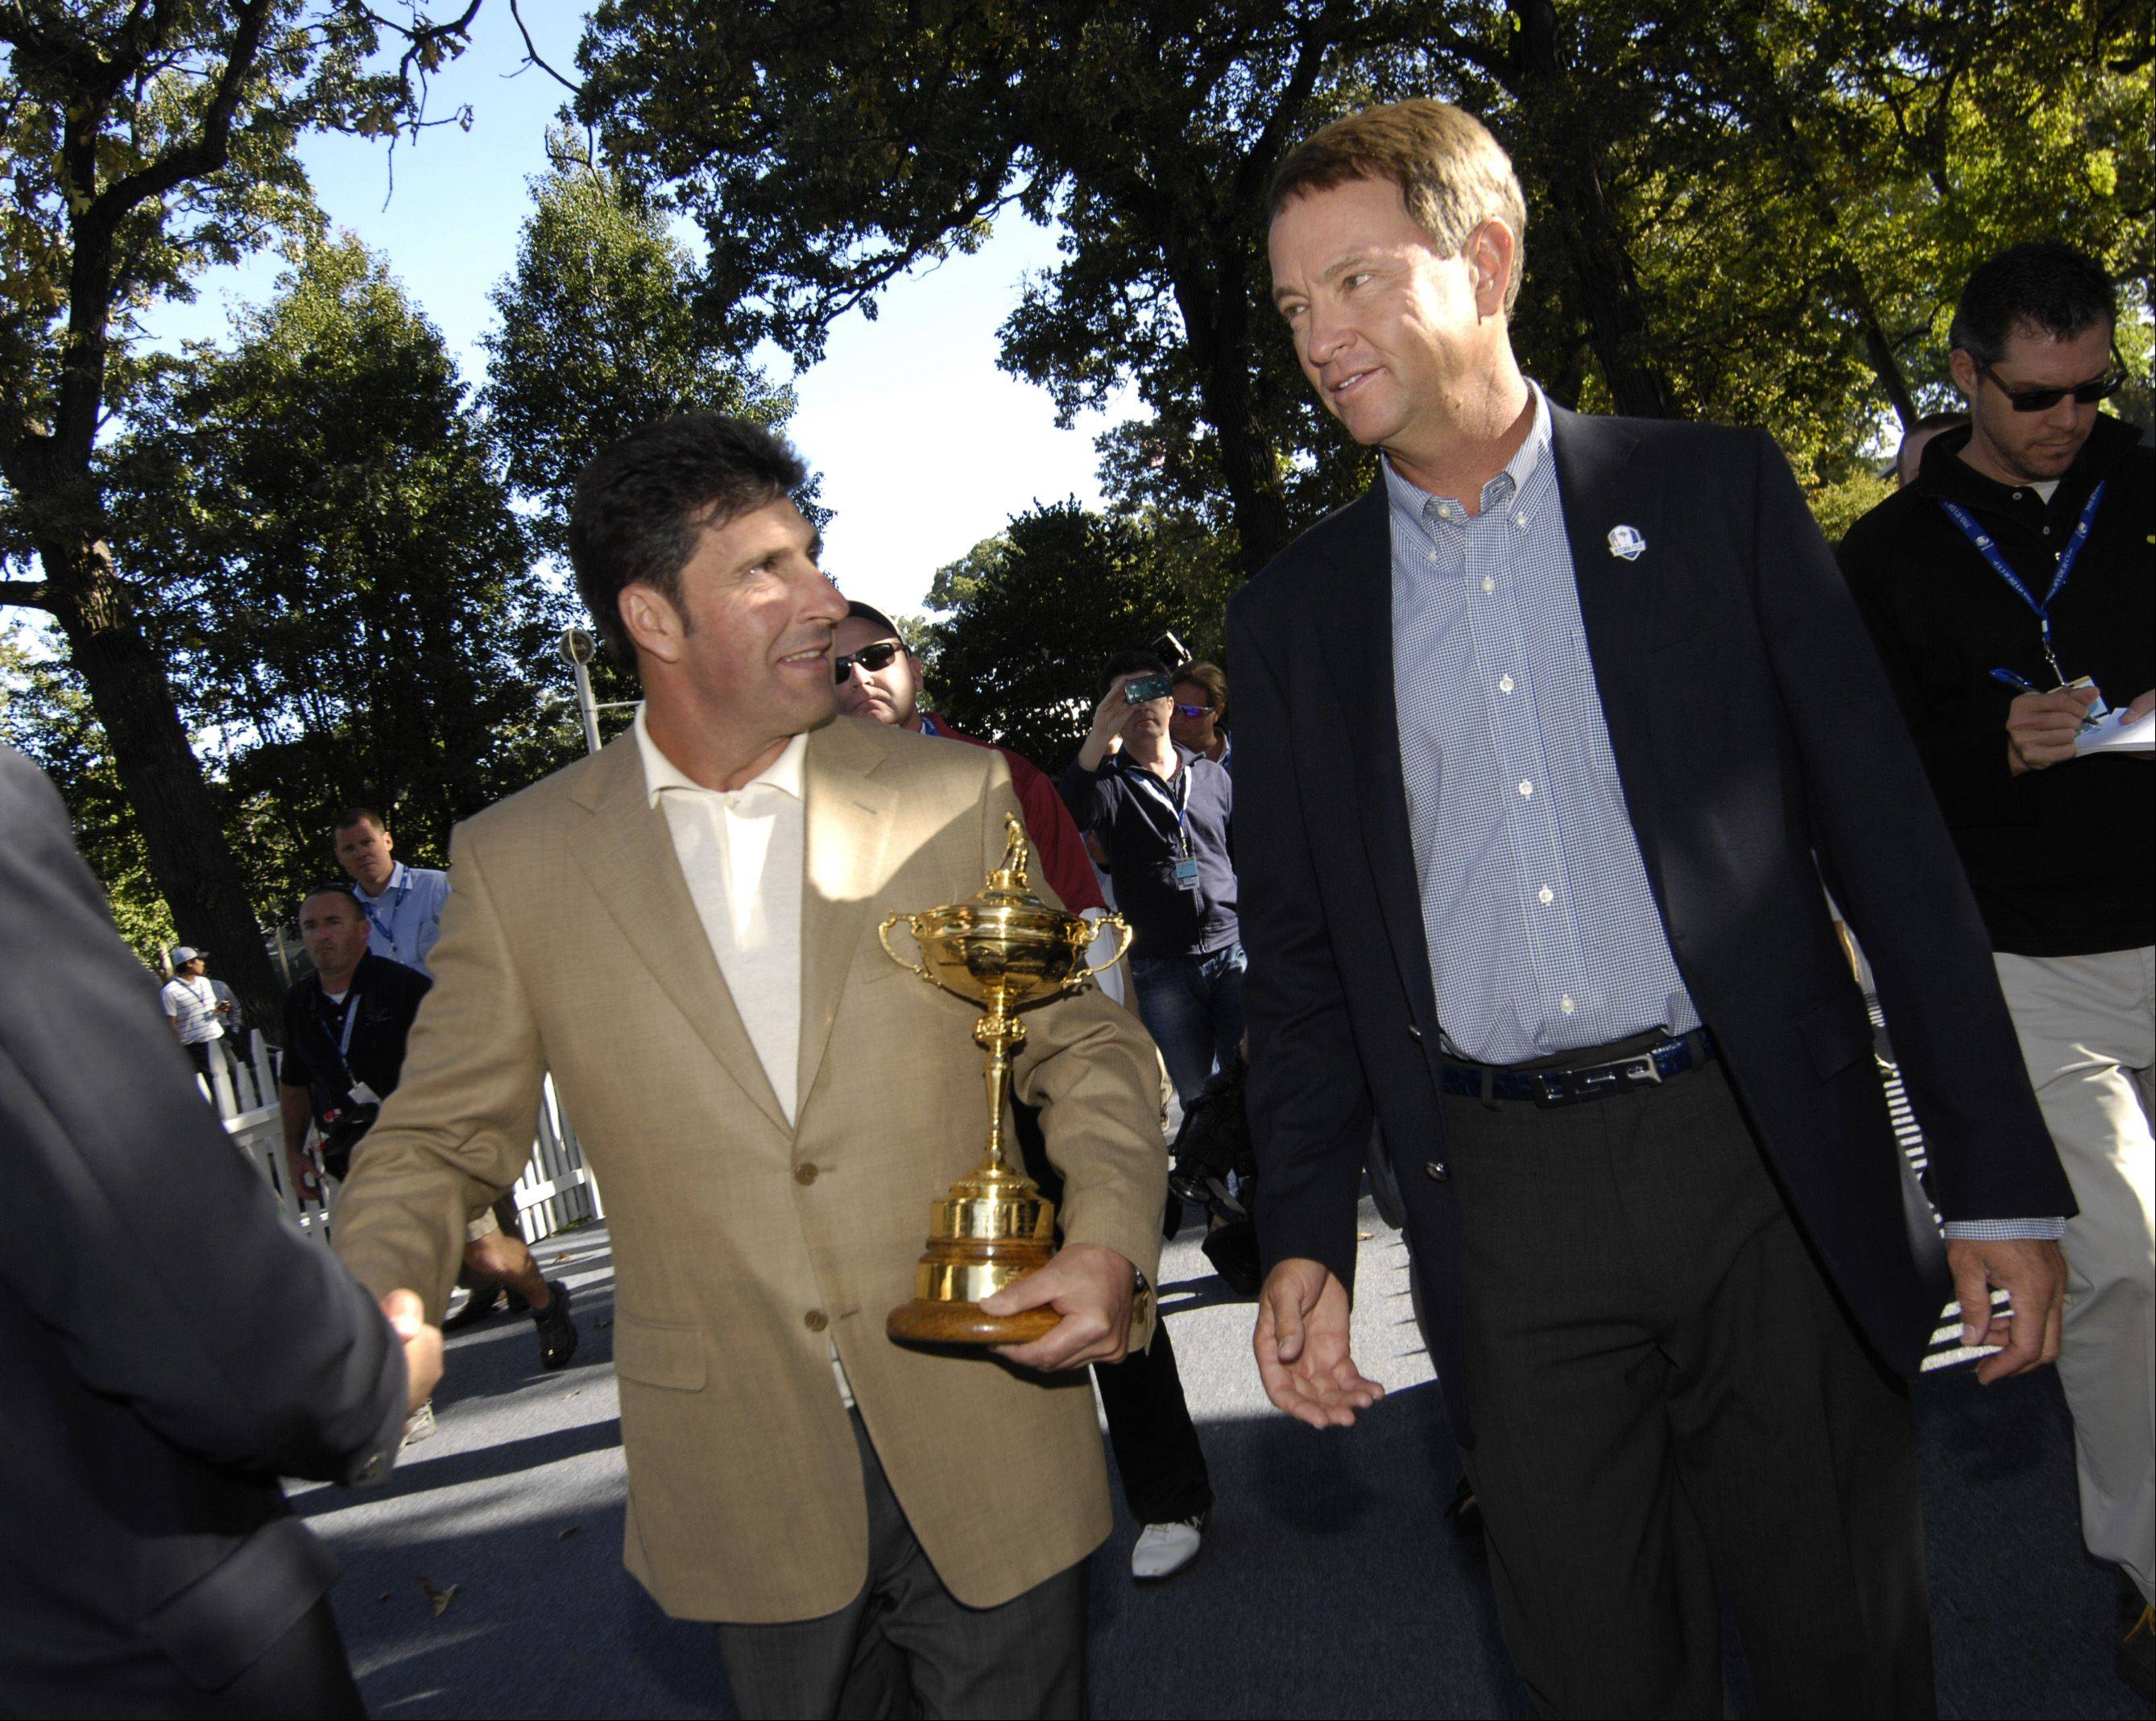 Ryder Cup captains Jose Maria Olazabal, left, and Davis Love III arrived at Medinah County Club on Monday. Their moves throughout the week will be watched closely.